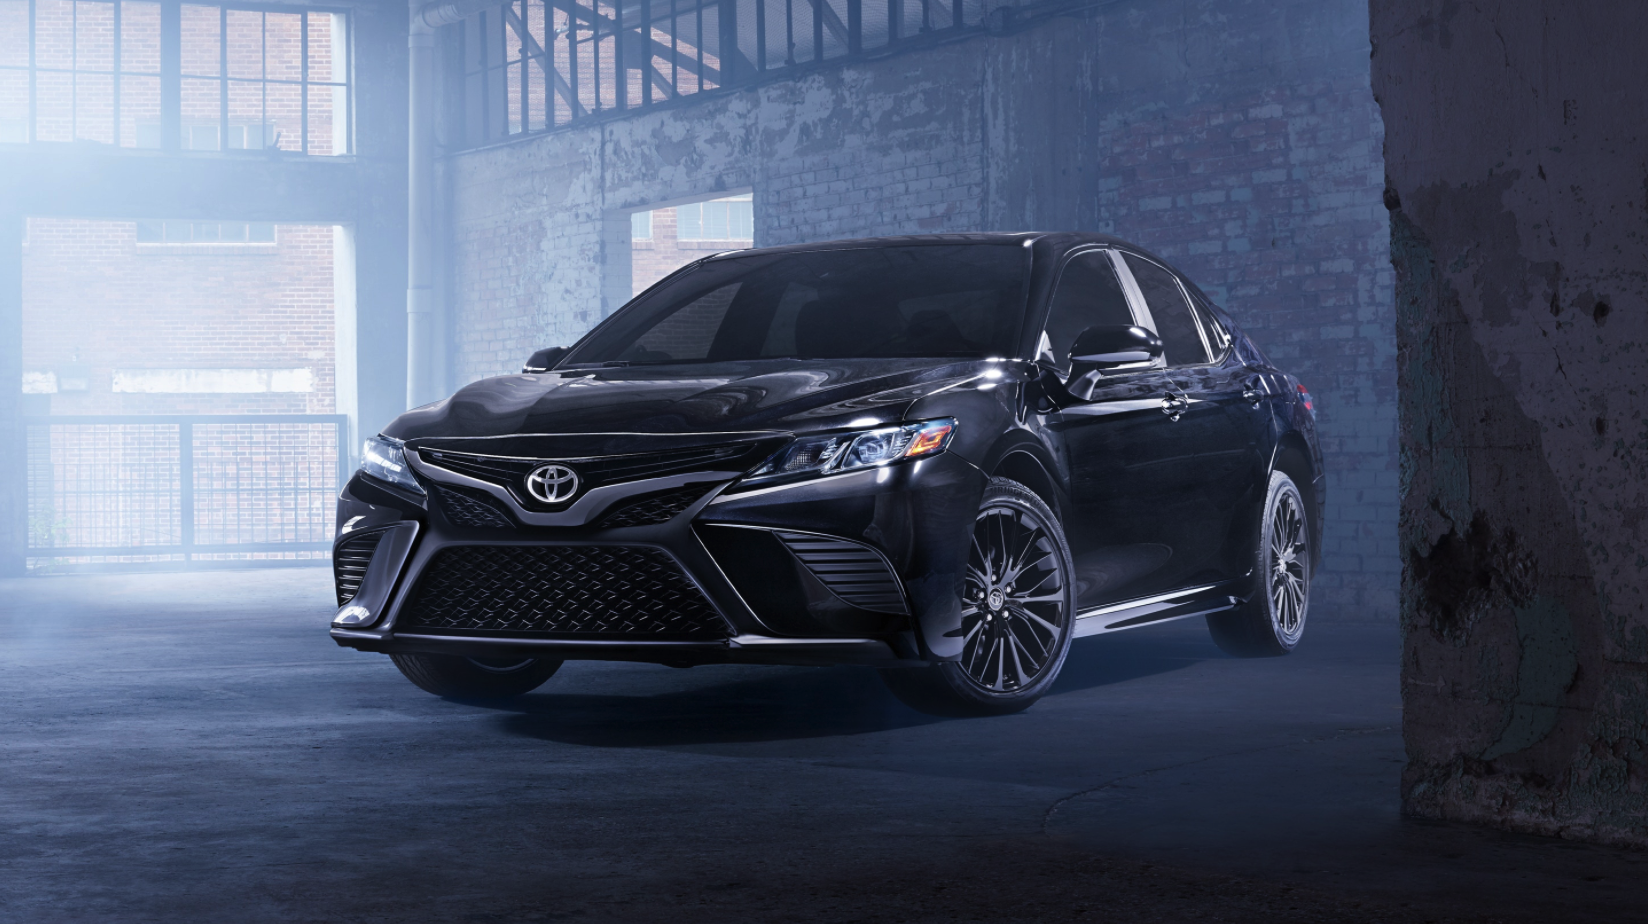 2020 Toyota Camry Front Exterior